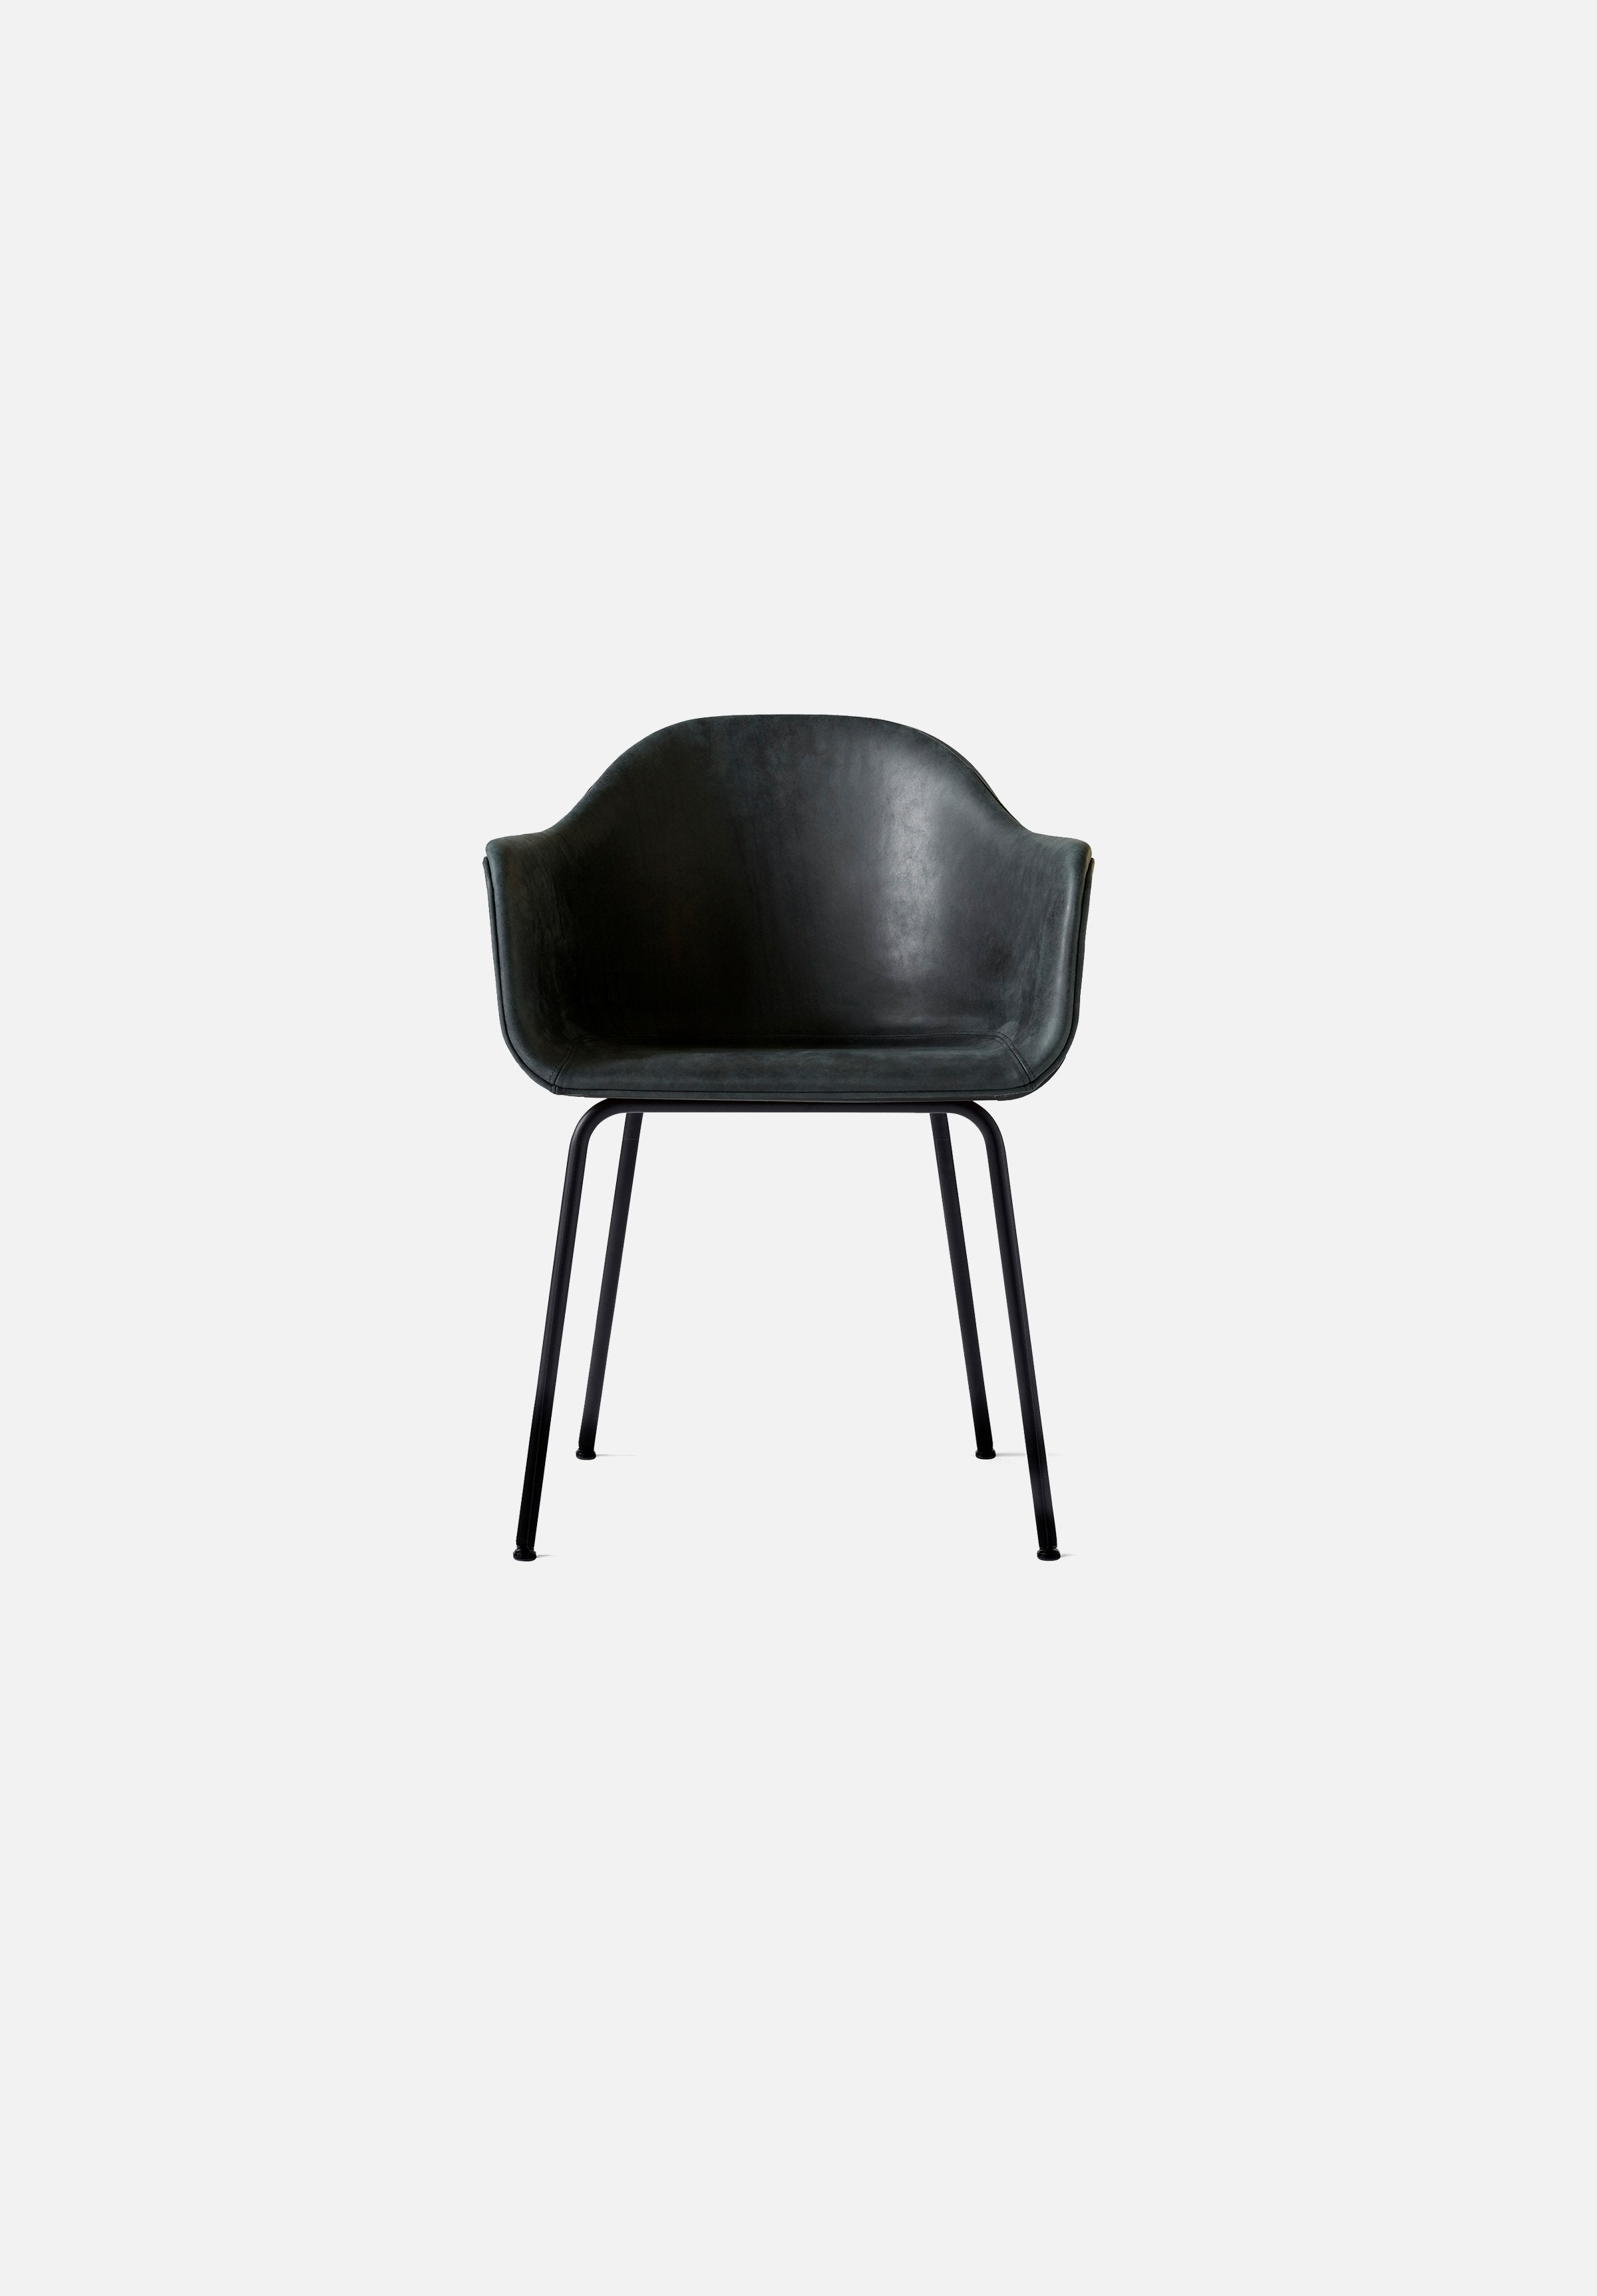 Harbour Chair - Steel Base-Norm Architects-Menu-black_leather-Black Steel-danish-interior-furniture-denmark-Average-design-toronto-canada